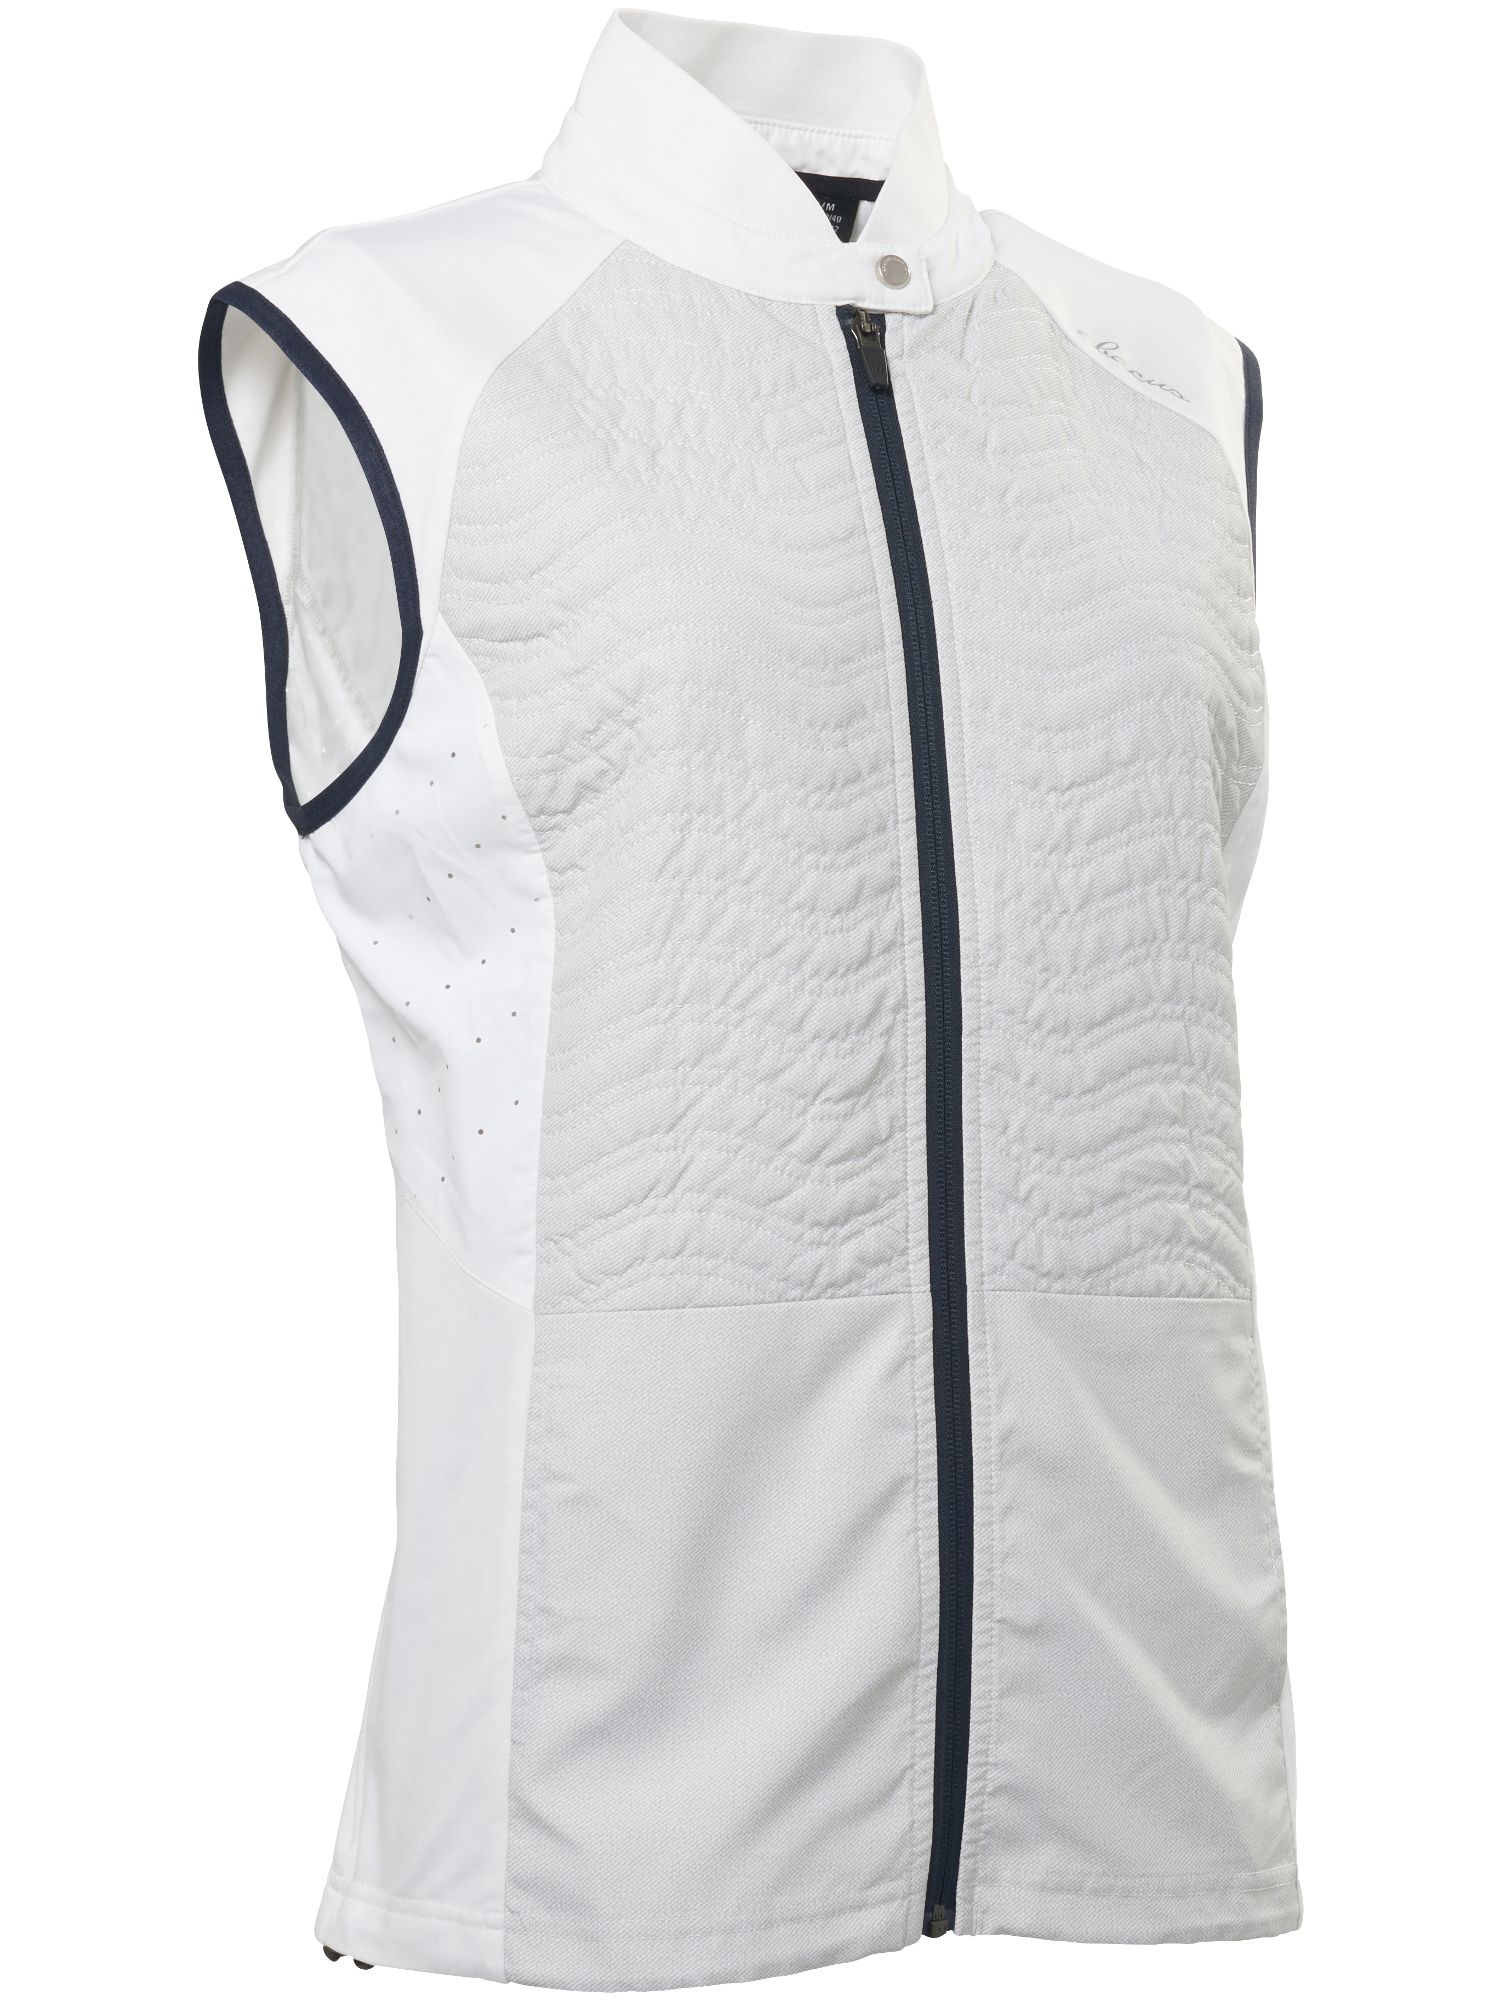 Abacus Troon Hybrid Gilet, White